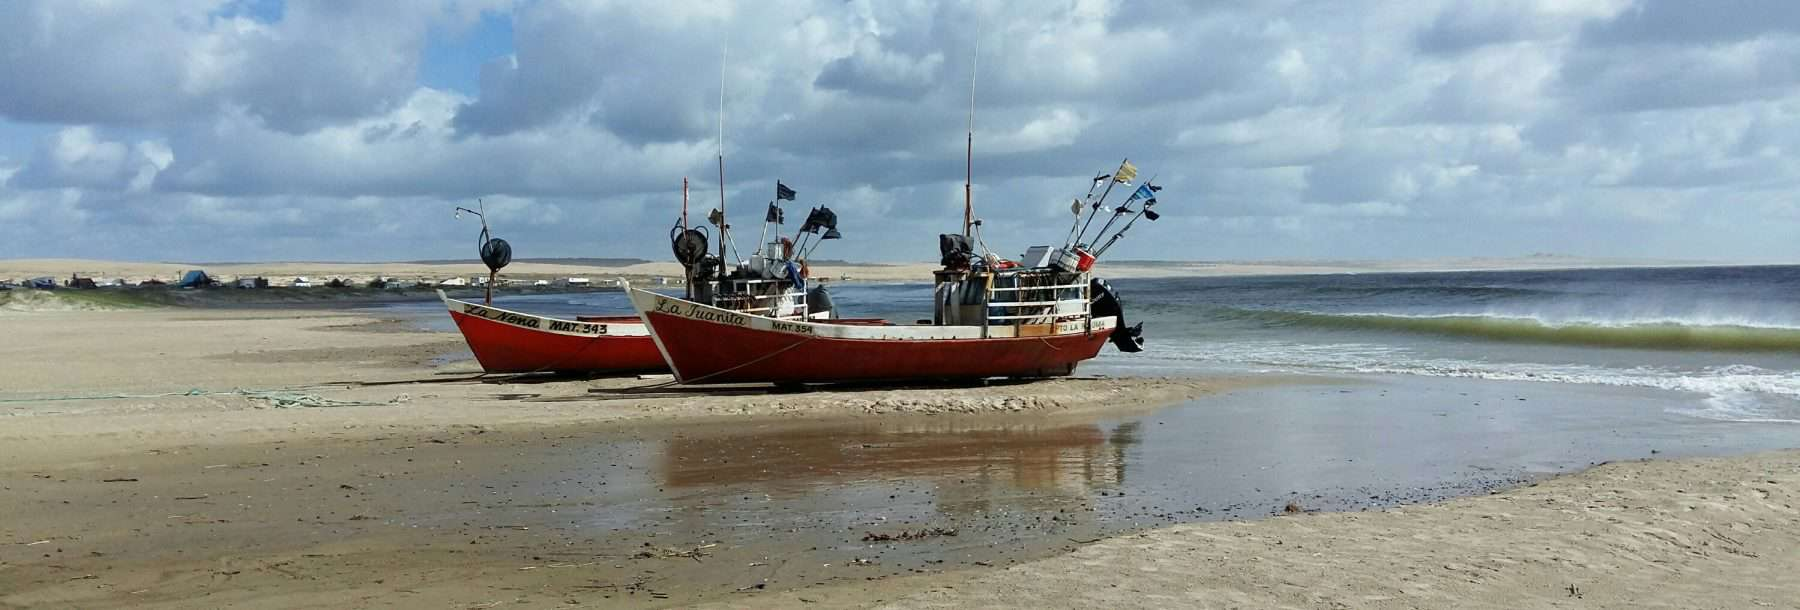 Ships on beach, Cabo Polonio, Uruguay